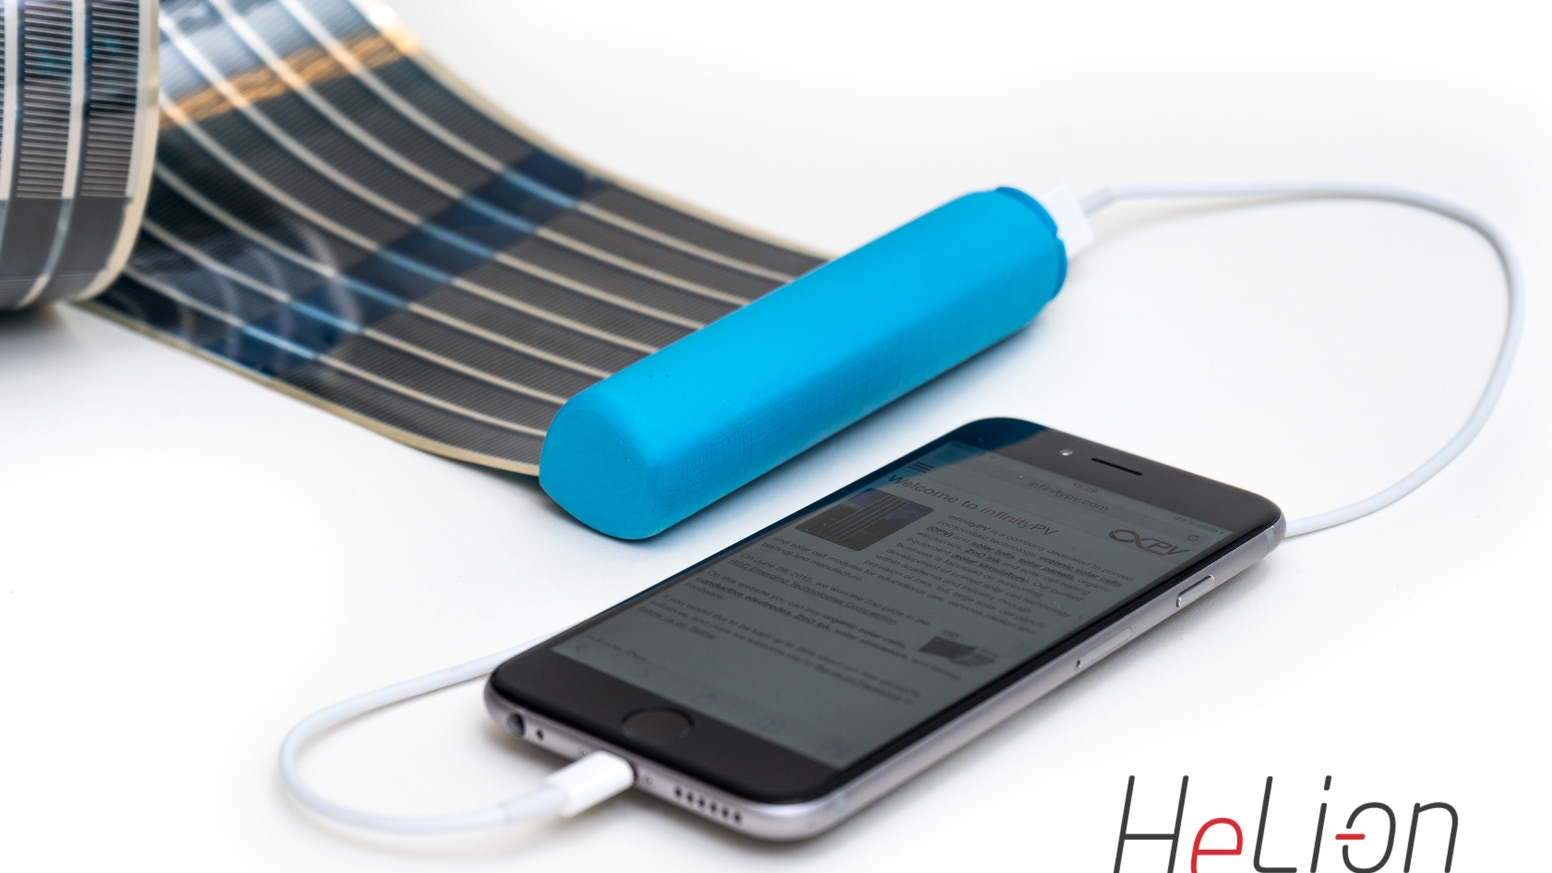 The infinityPV HeLi-on charger allows you to carry a solar panel and battery in your pocket.